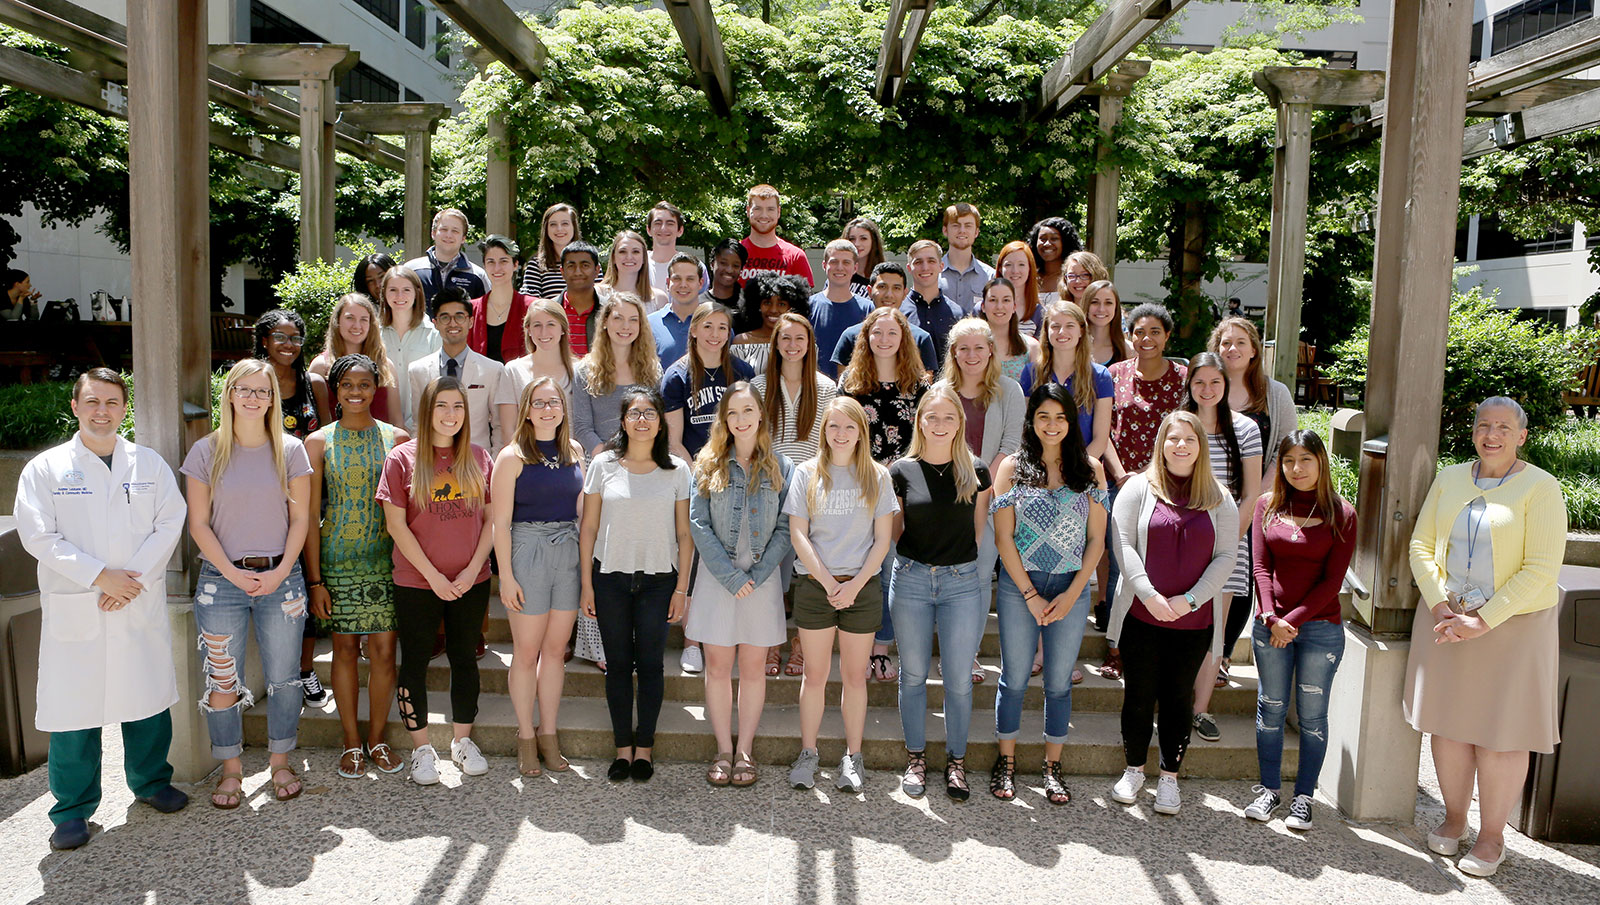 Students from the Primary Care Scholars program held at Penn State College of Medicine are seen with Dr. Andrew Lutzkanin, front left, and Diane Ferron, front right, of the Department of Family Community Medicine. The large group is pictured standing in an outdoor space under a plant-covered pergola.